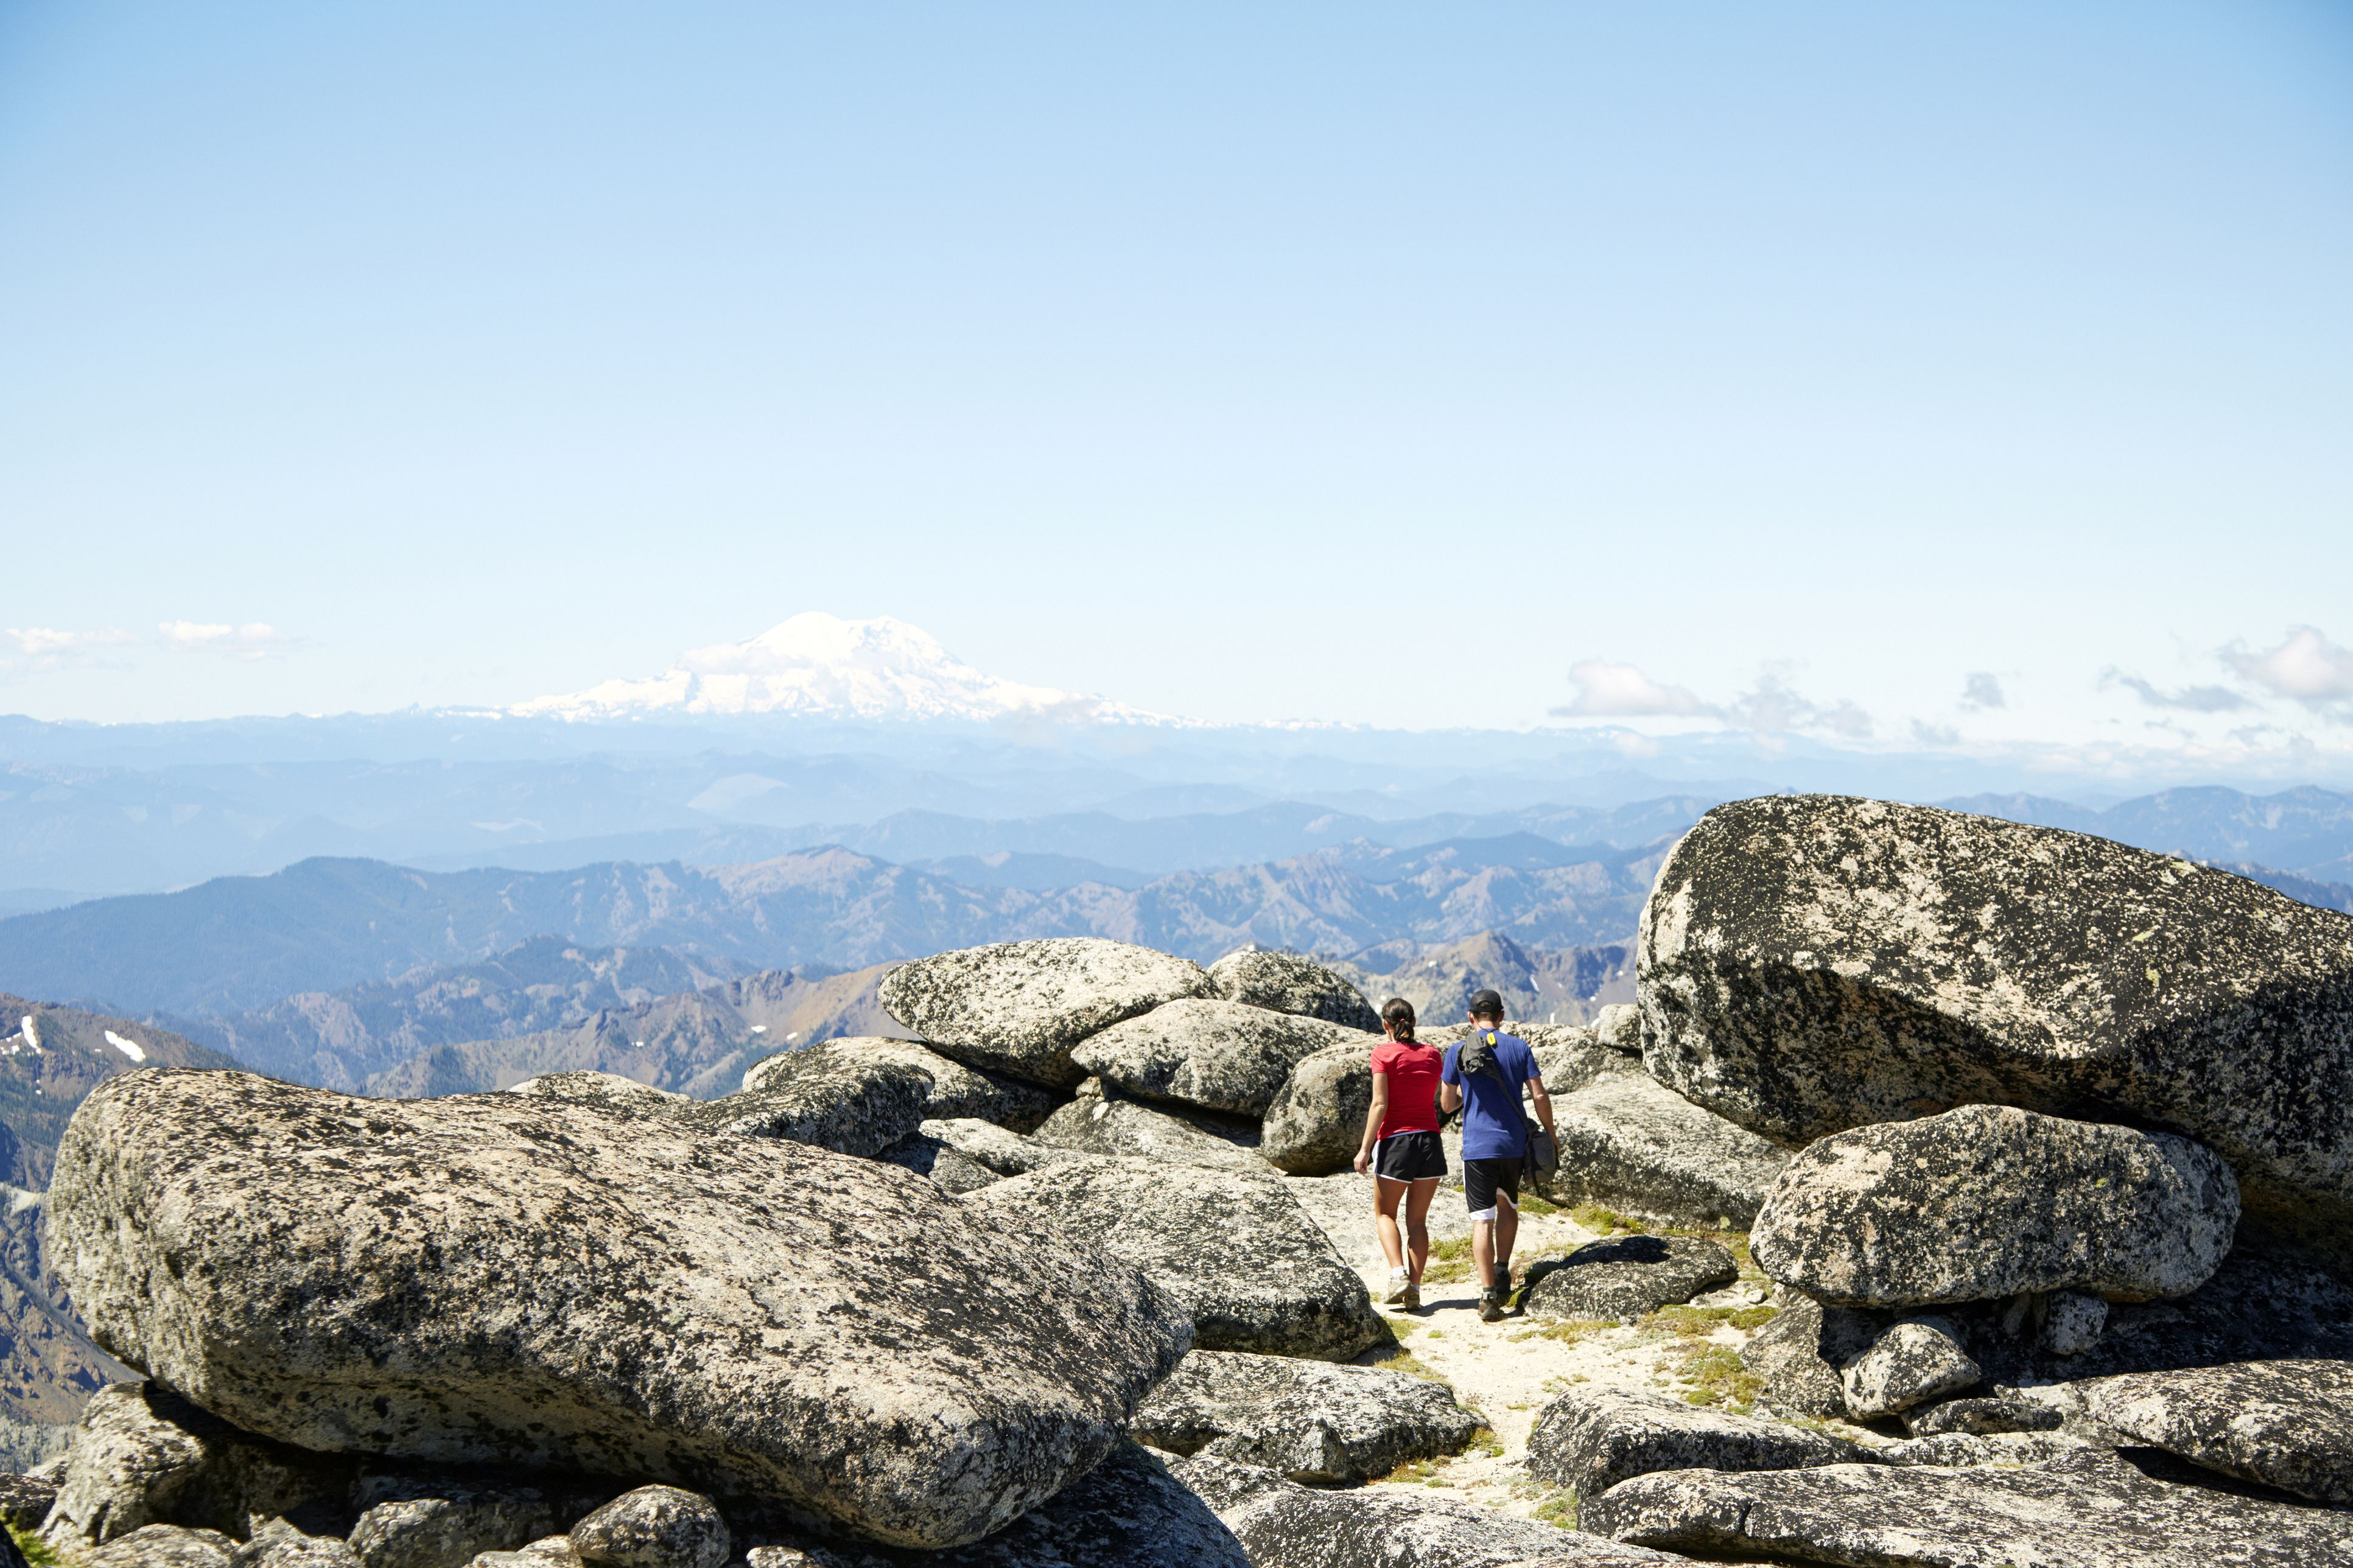 Couple hiking on rocky hilltop